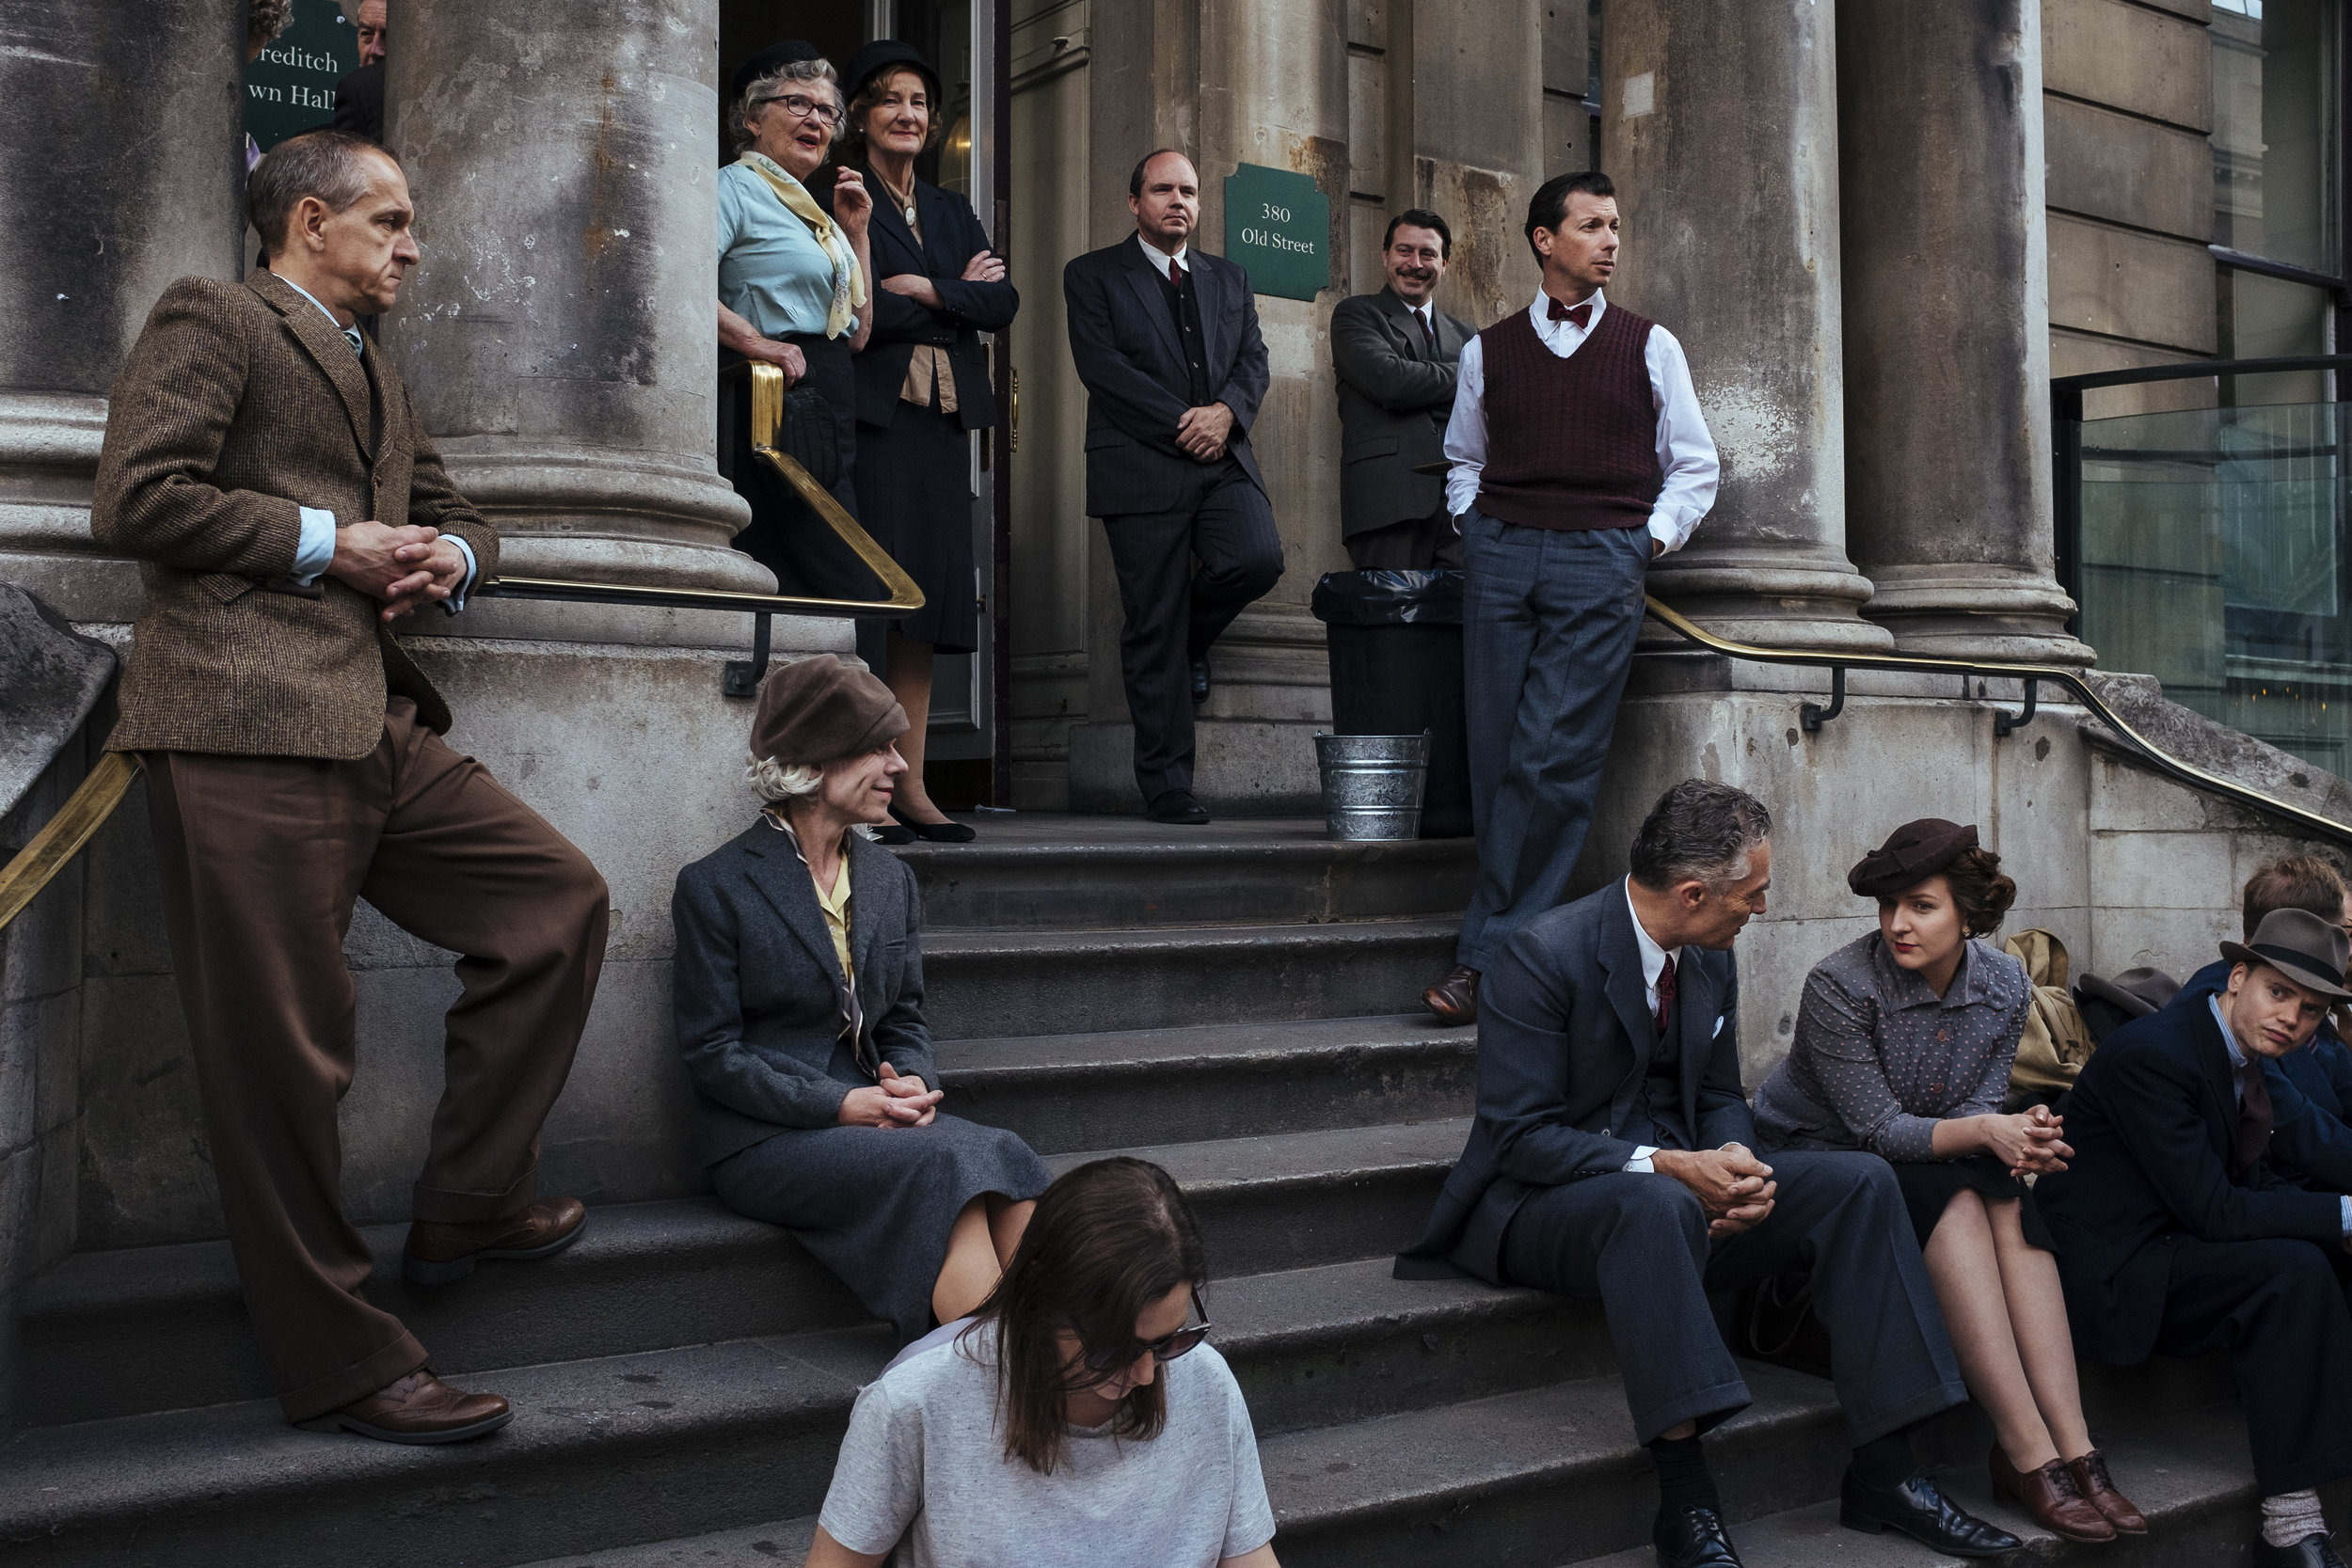 """The cast of a television film production entitled """"Churchill's Secret"""" wear period costumes as they take a break from filming outside Shoreditch Town Hall, London, Sunday, June 21, 2015."""